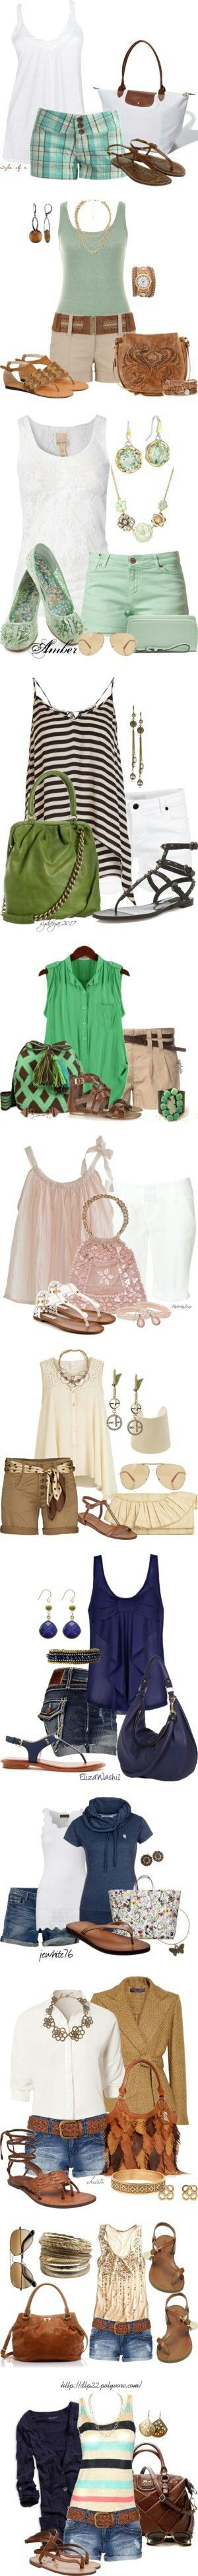 Find More at => http://feedproxy.google.com/~r/amazingoutfits/~3/lqQ7juR3KPw/AmazingOutfits.page